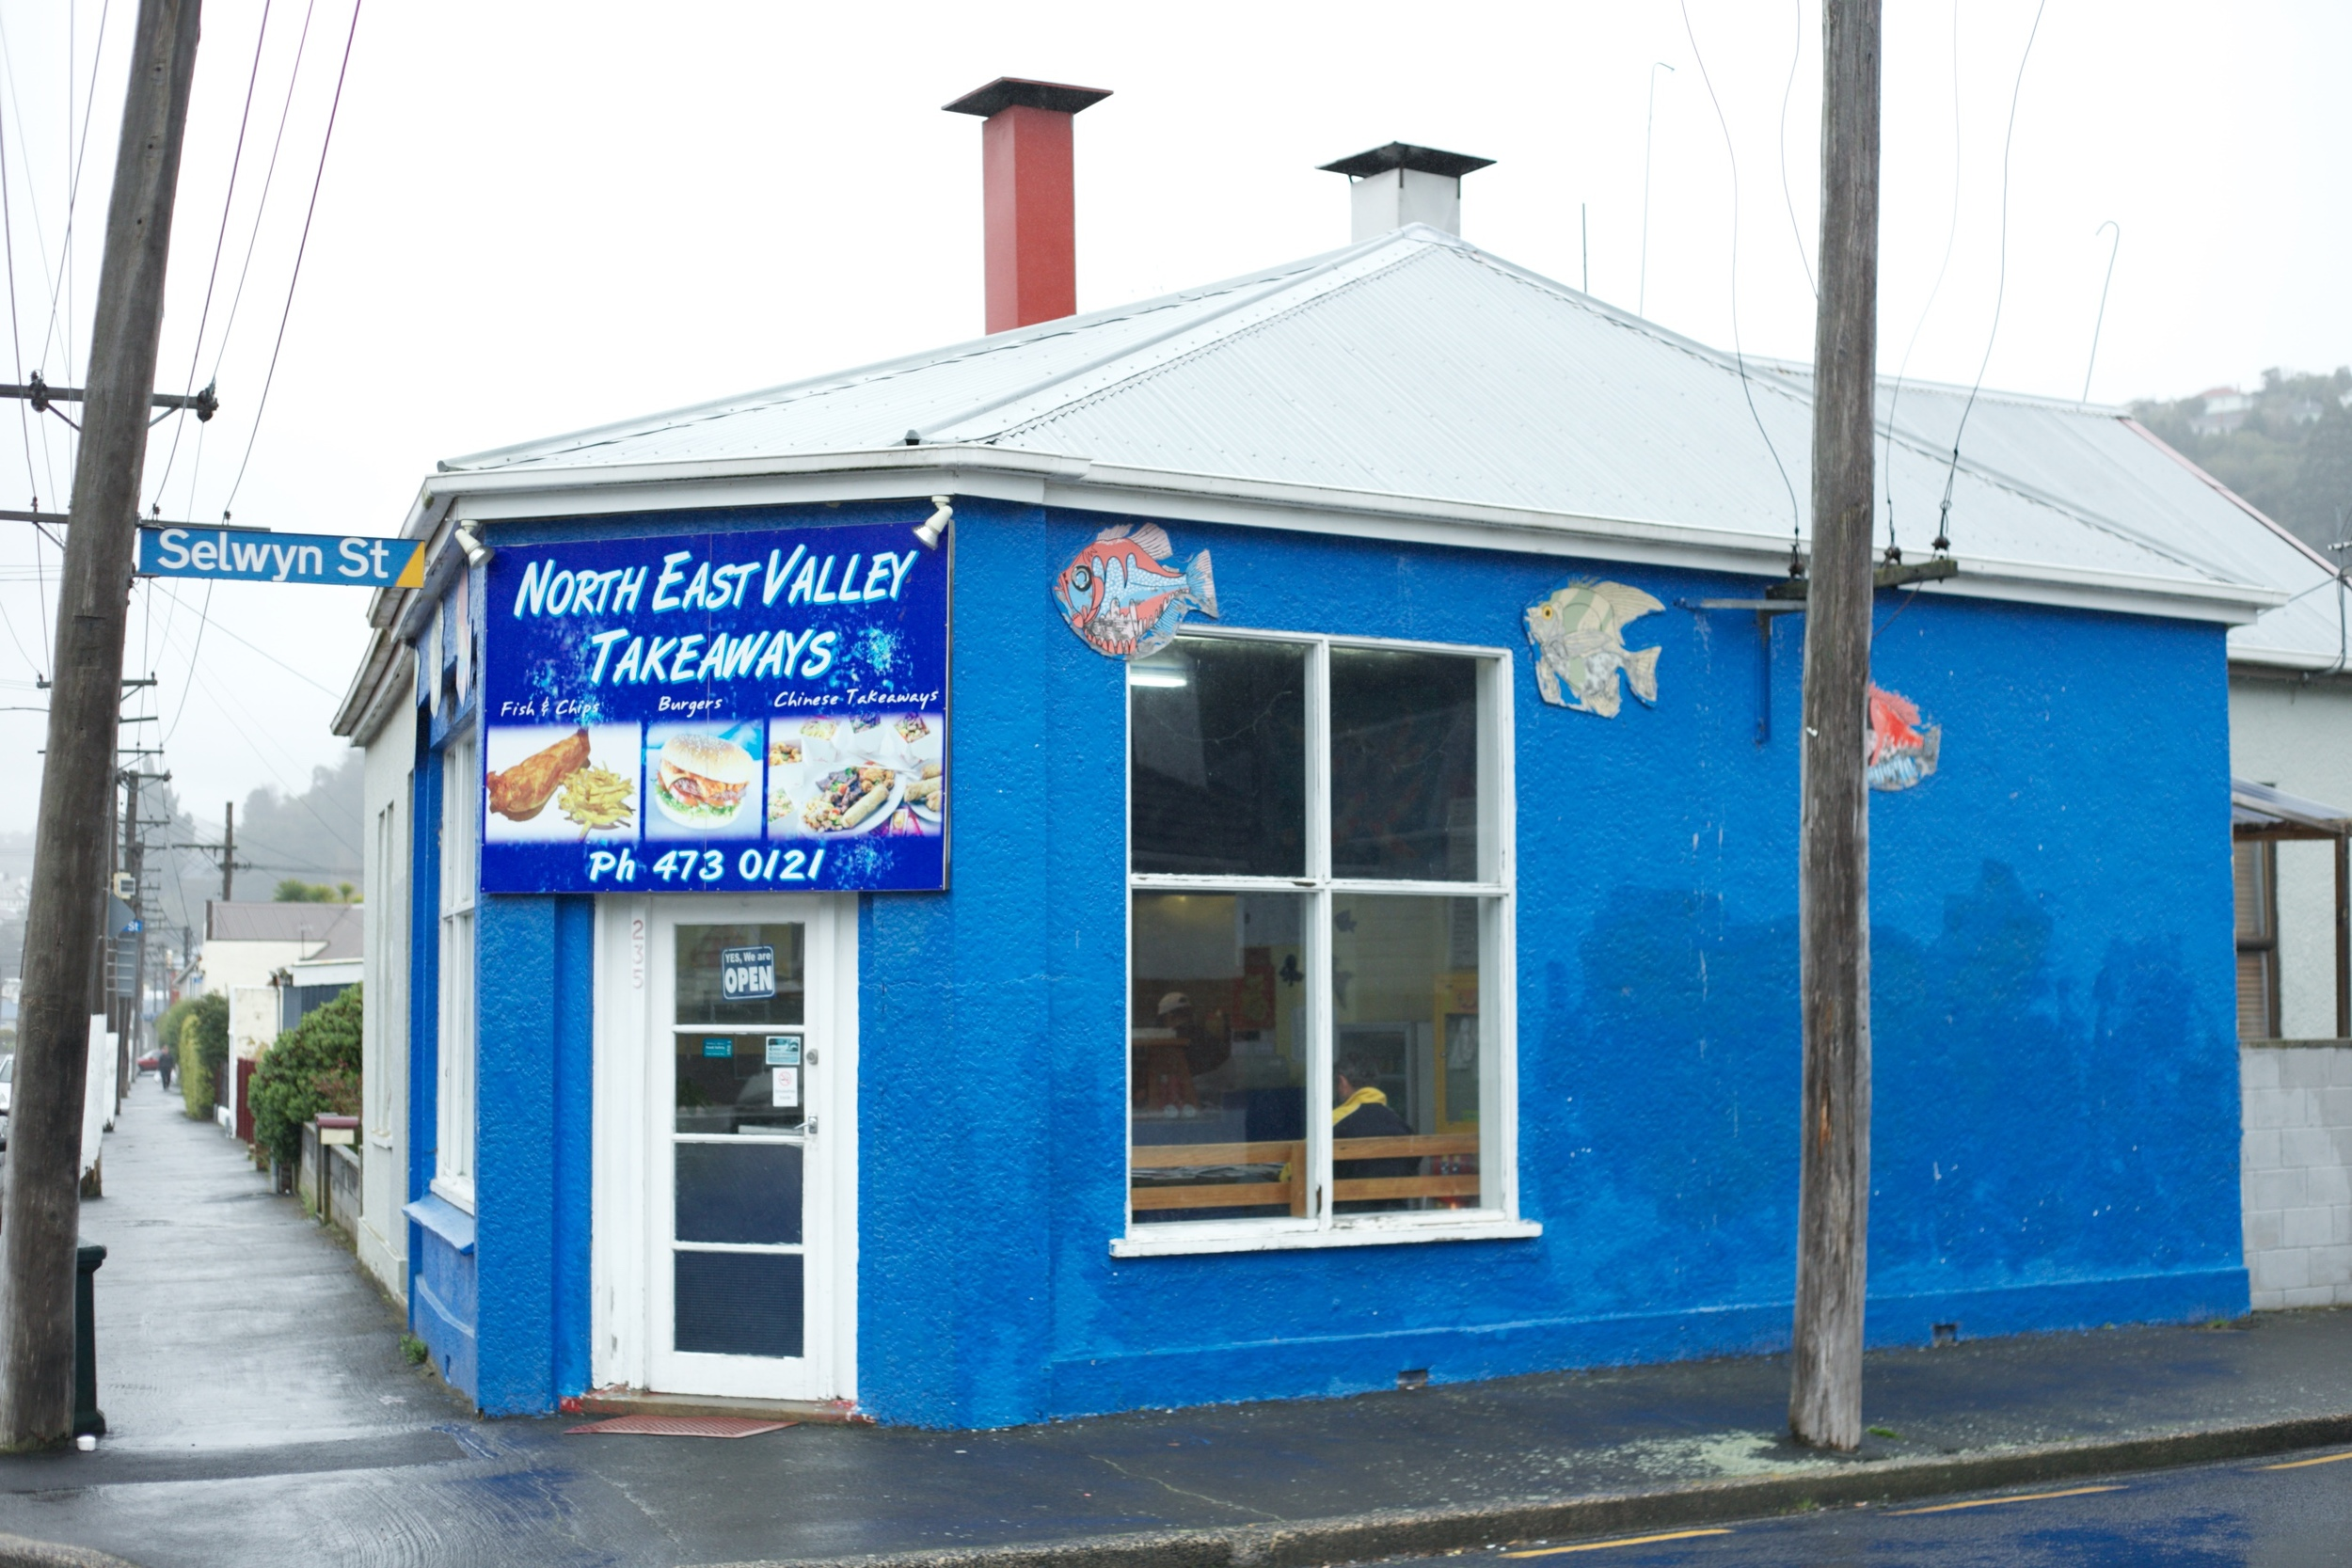 Best fish and chips list Dunedin - North East Valley Takeaways.